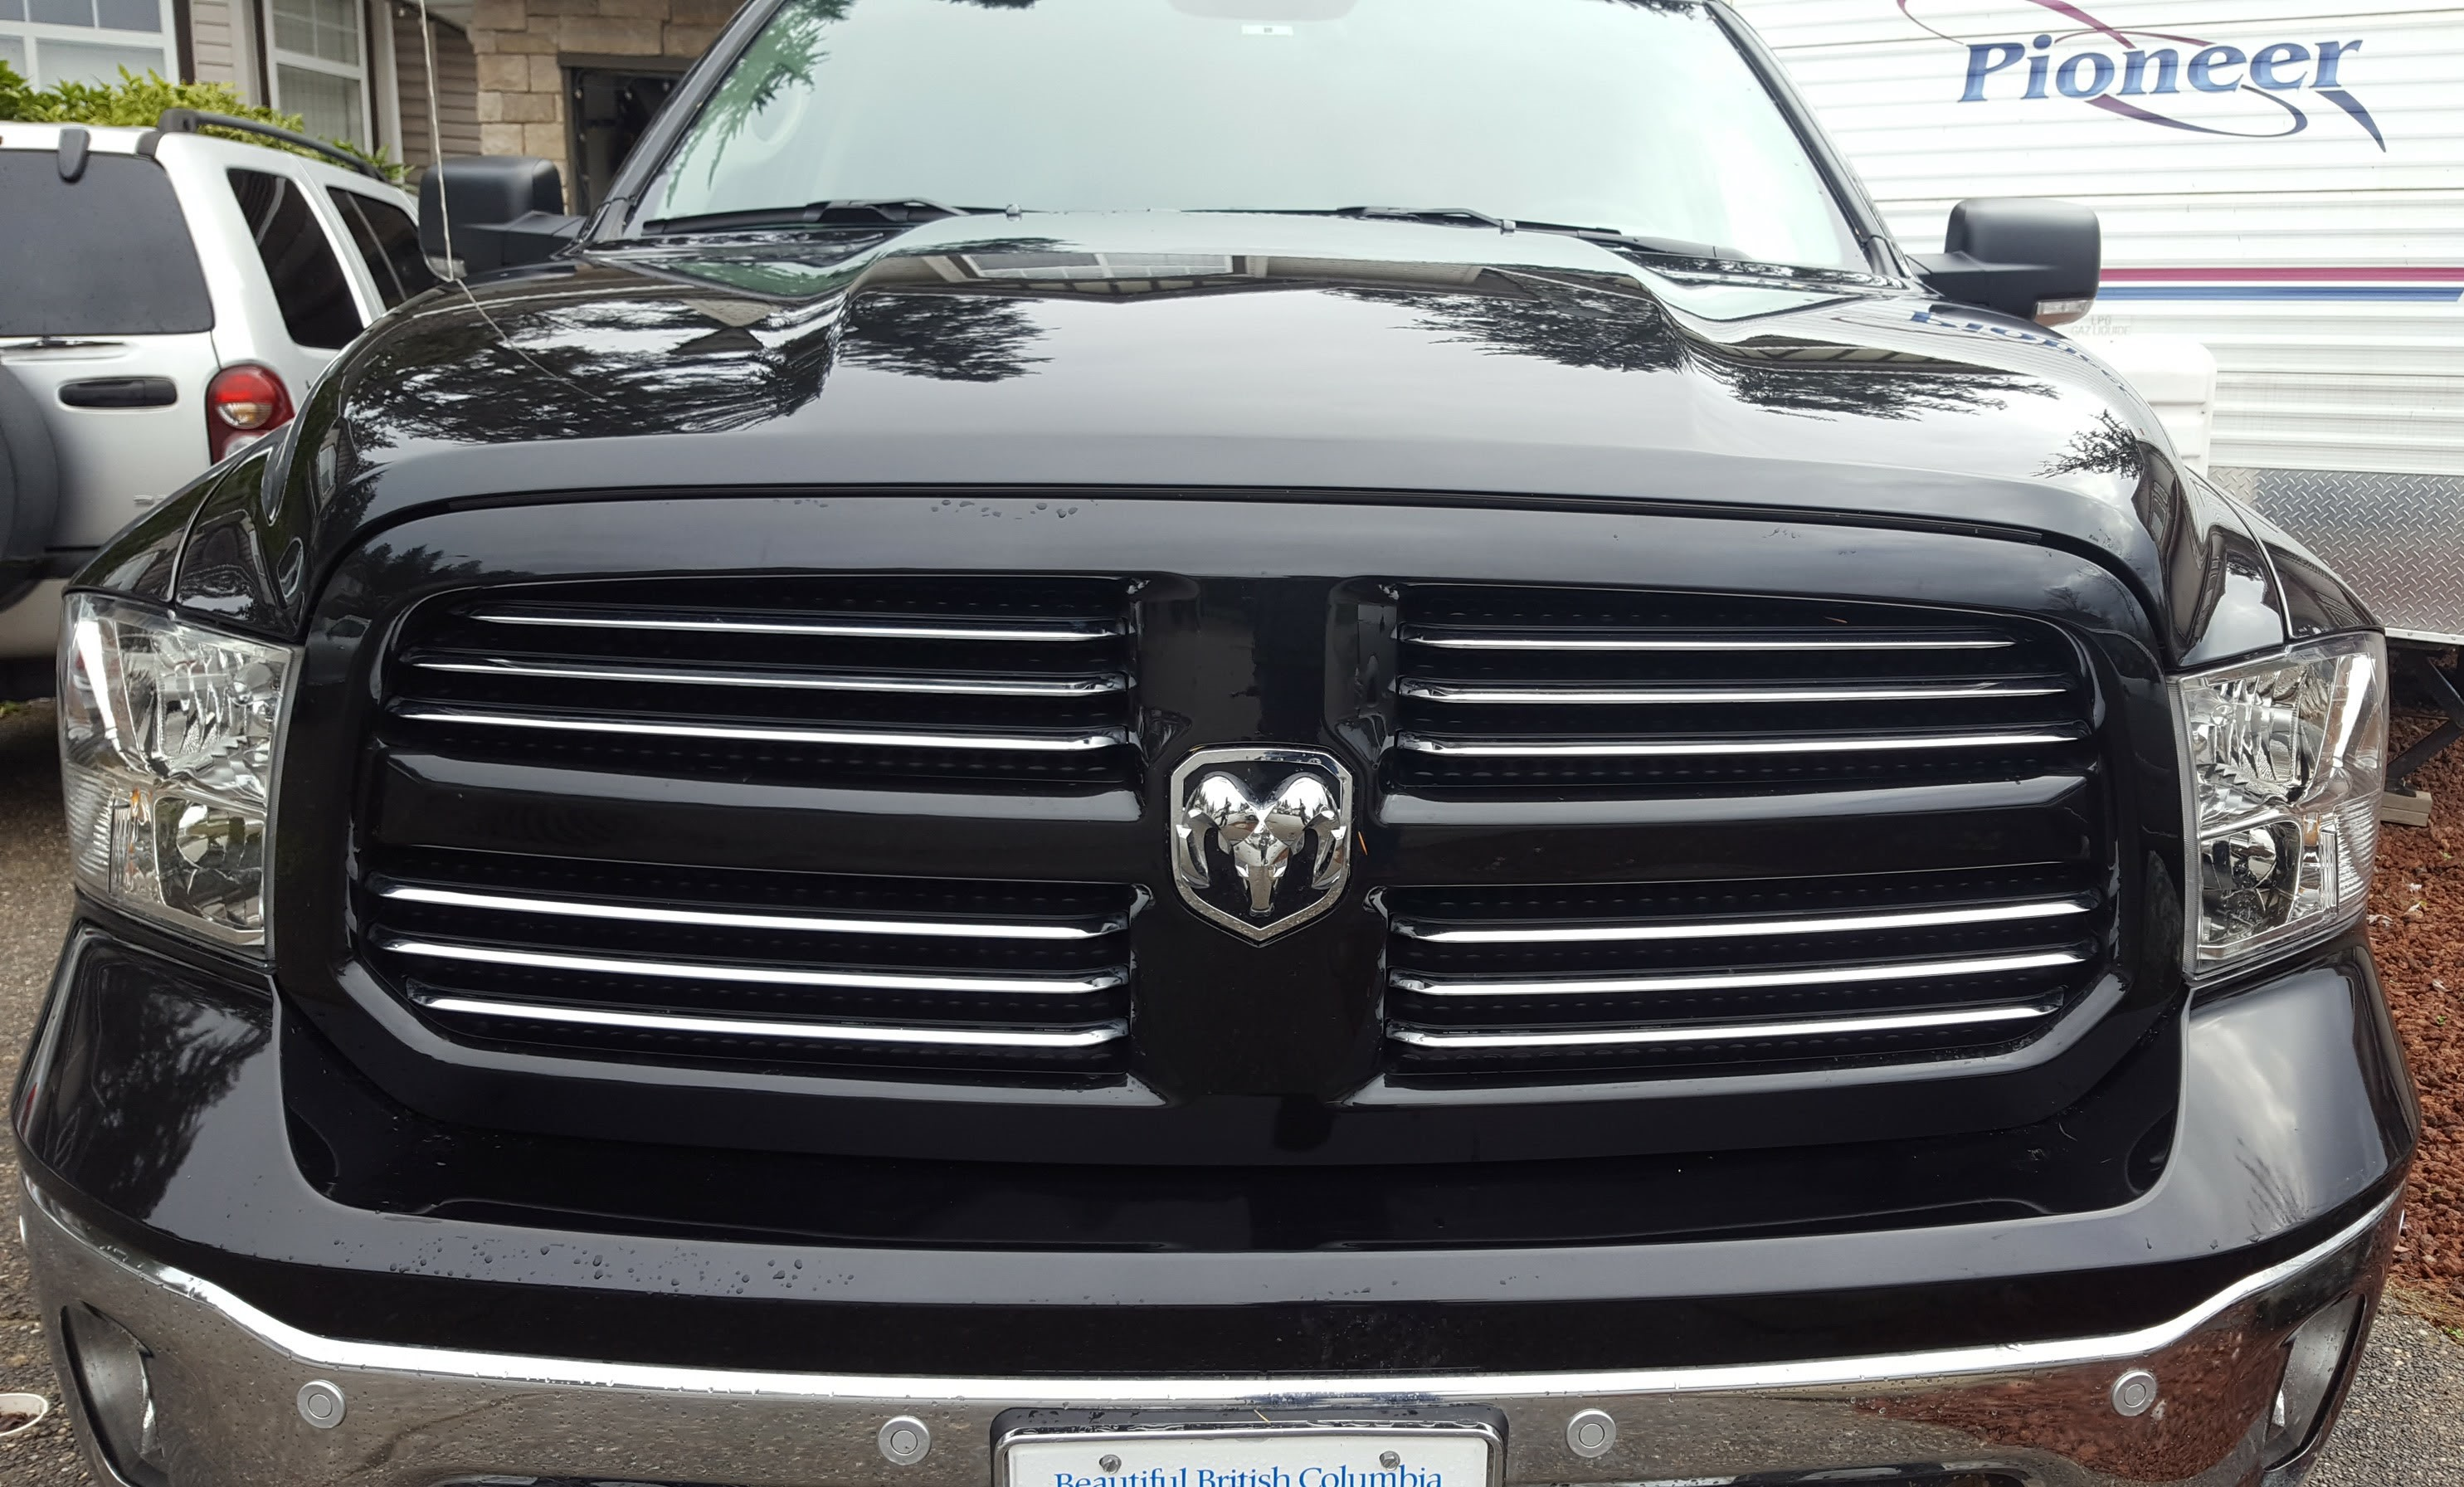 Grille,Grills,Grill and MORE grills!!!!!-20161112_120906.jpg